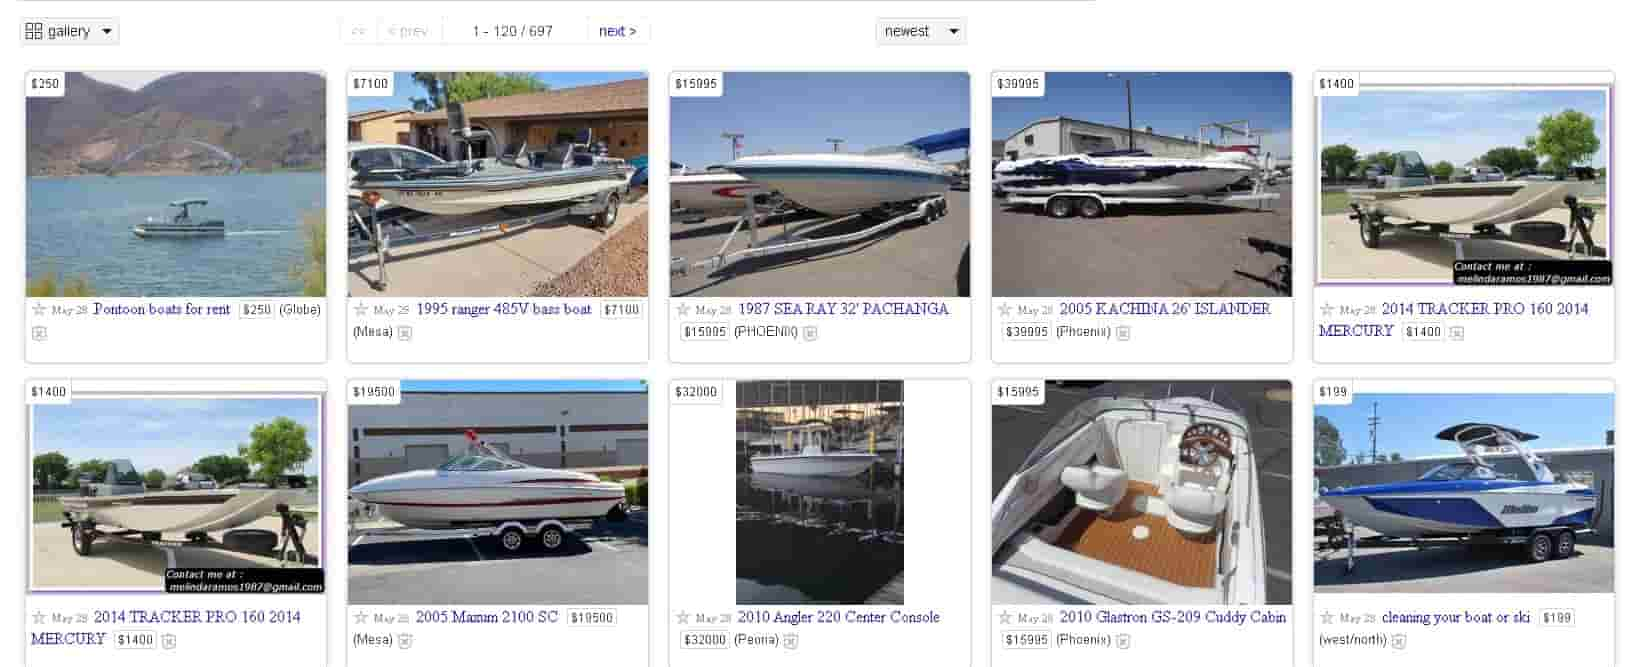 renting out your boat on craigslist